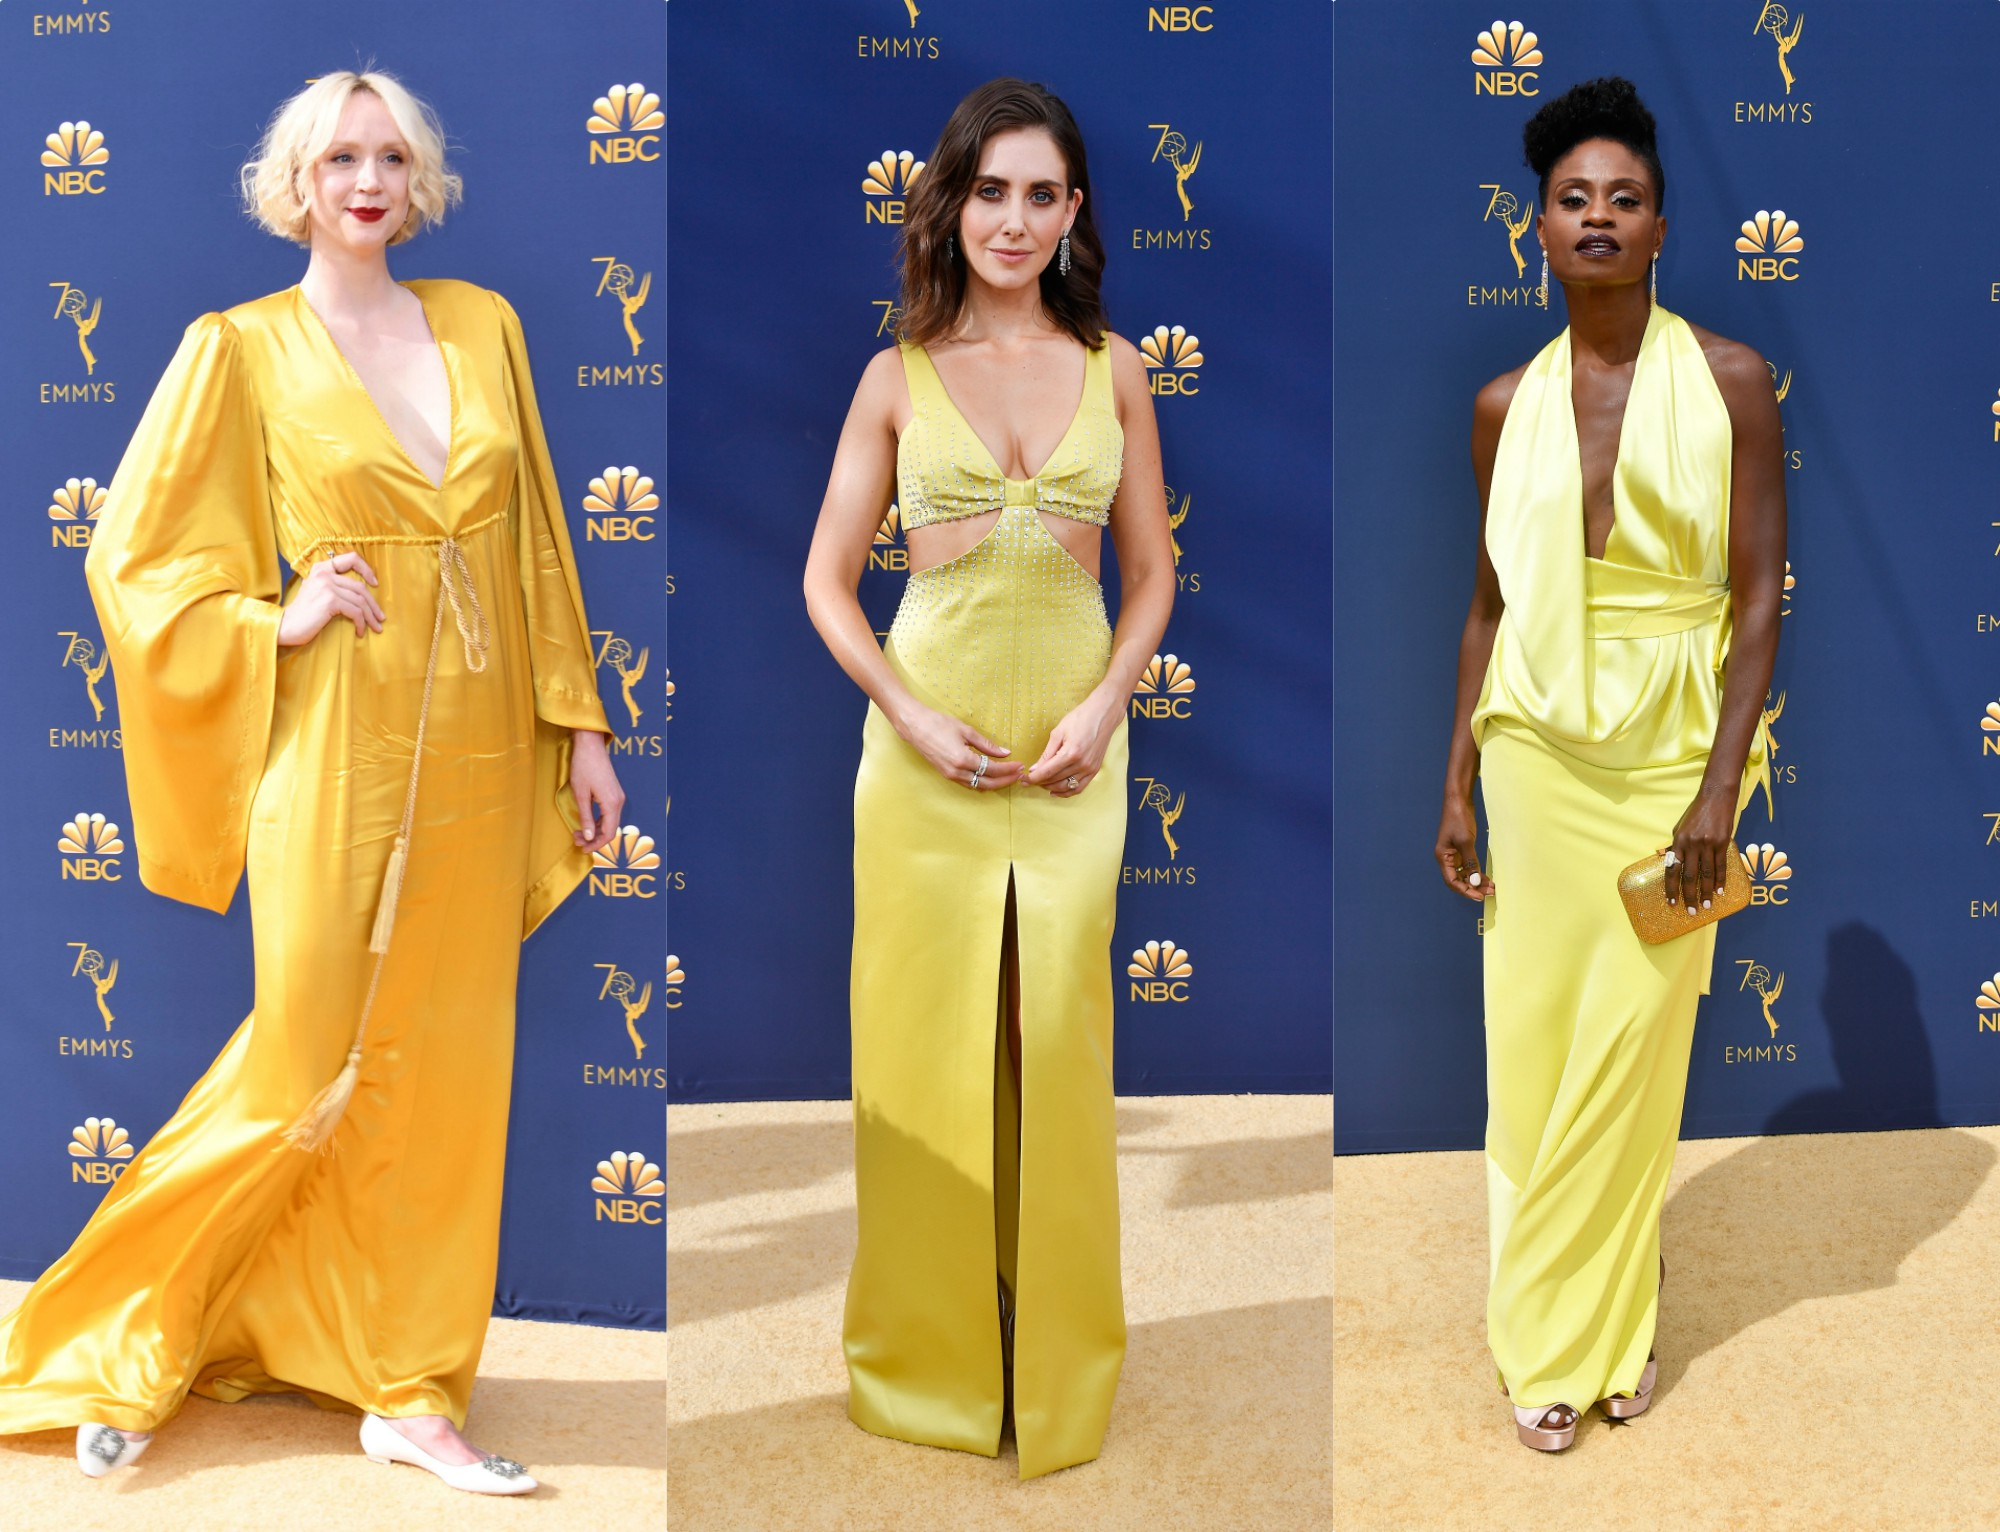 Bright yellow is the biggest red carpet trend at the 2018 Emmy Awards